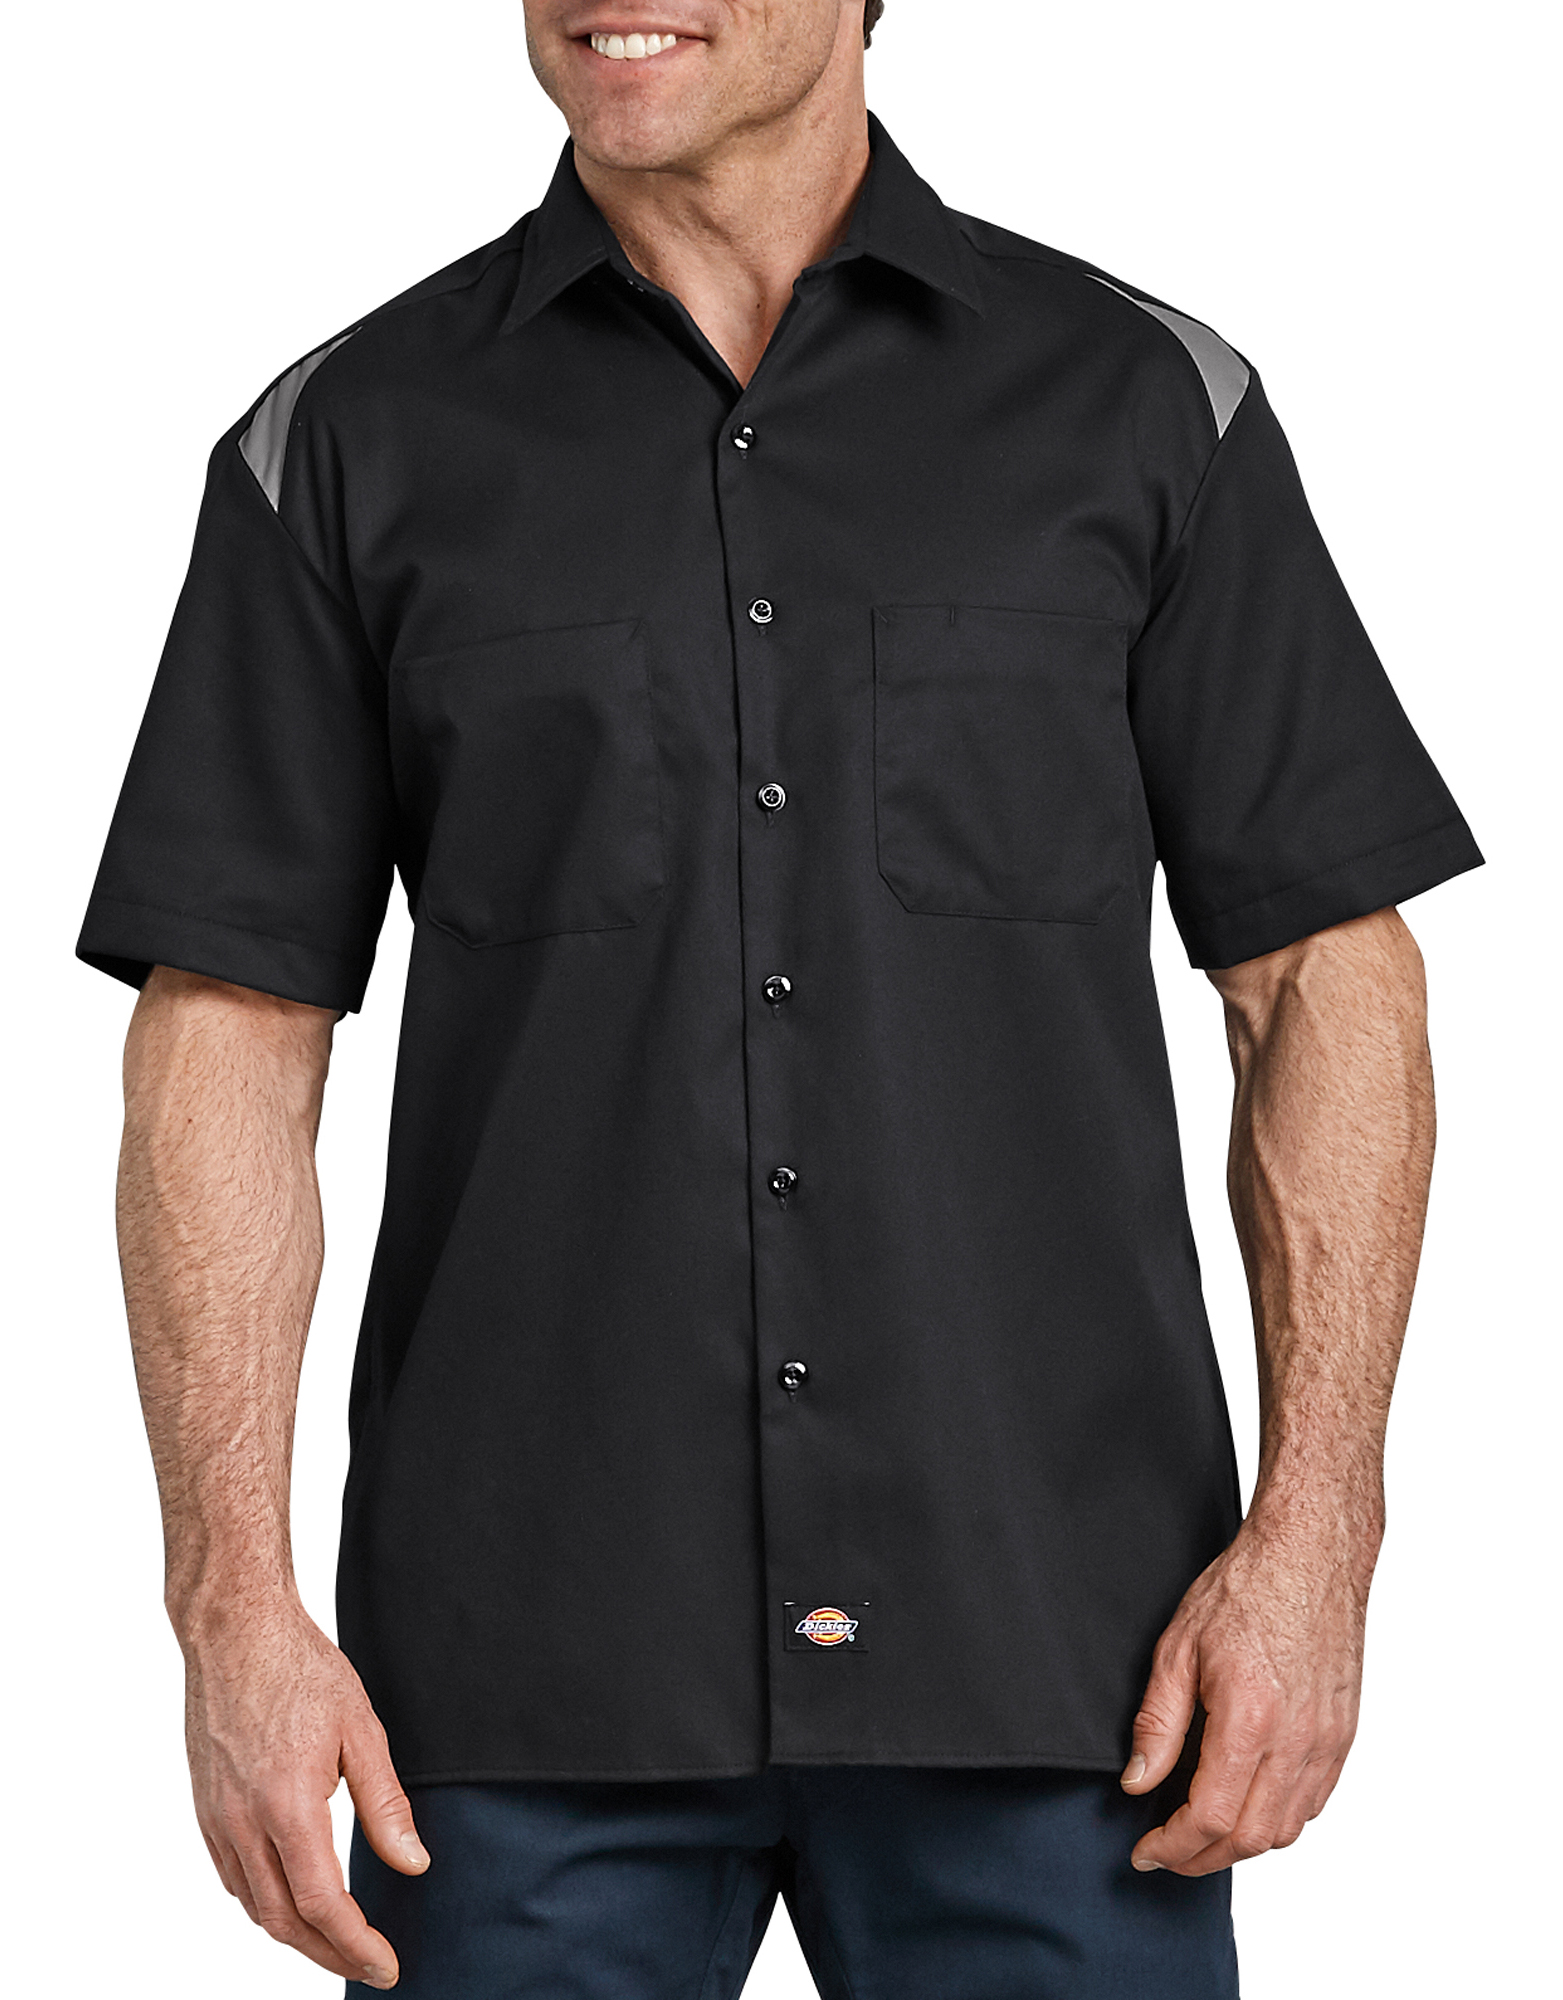 Short Sleeve Performance Team Shirt - Black Gray Tone (BKSM)